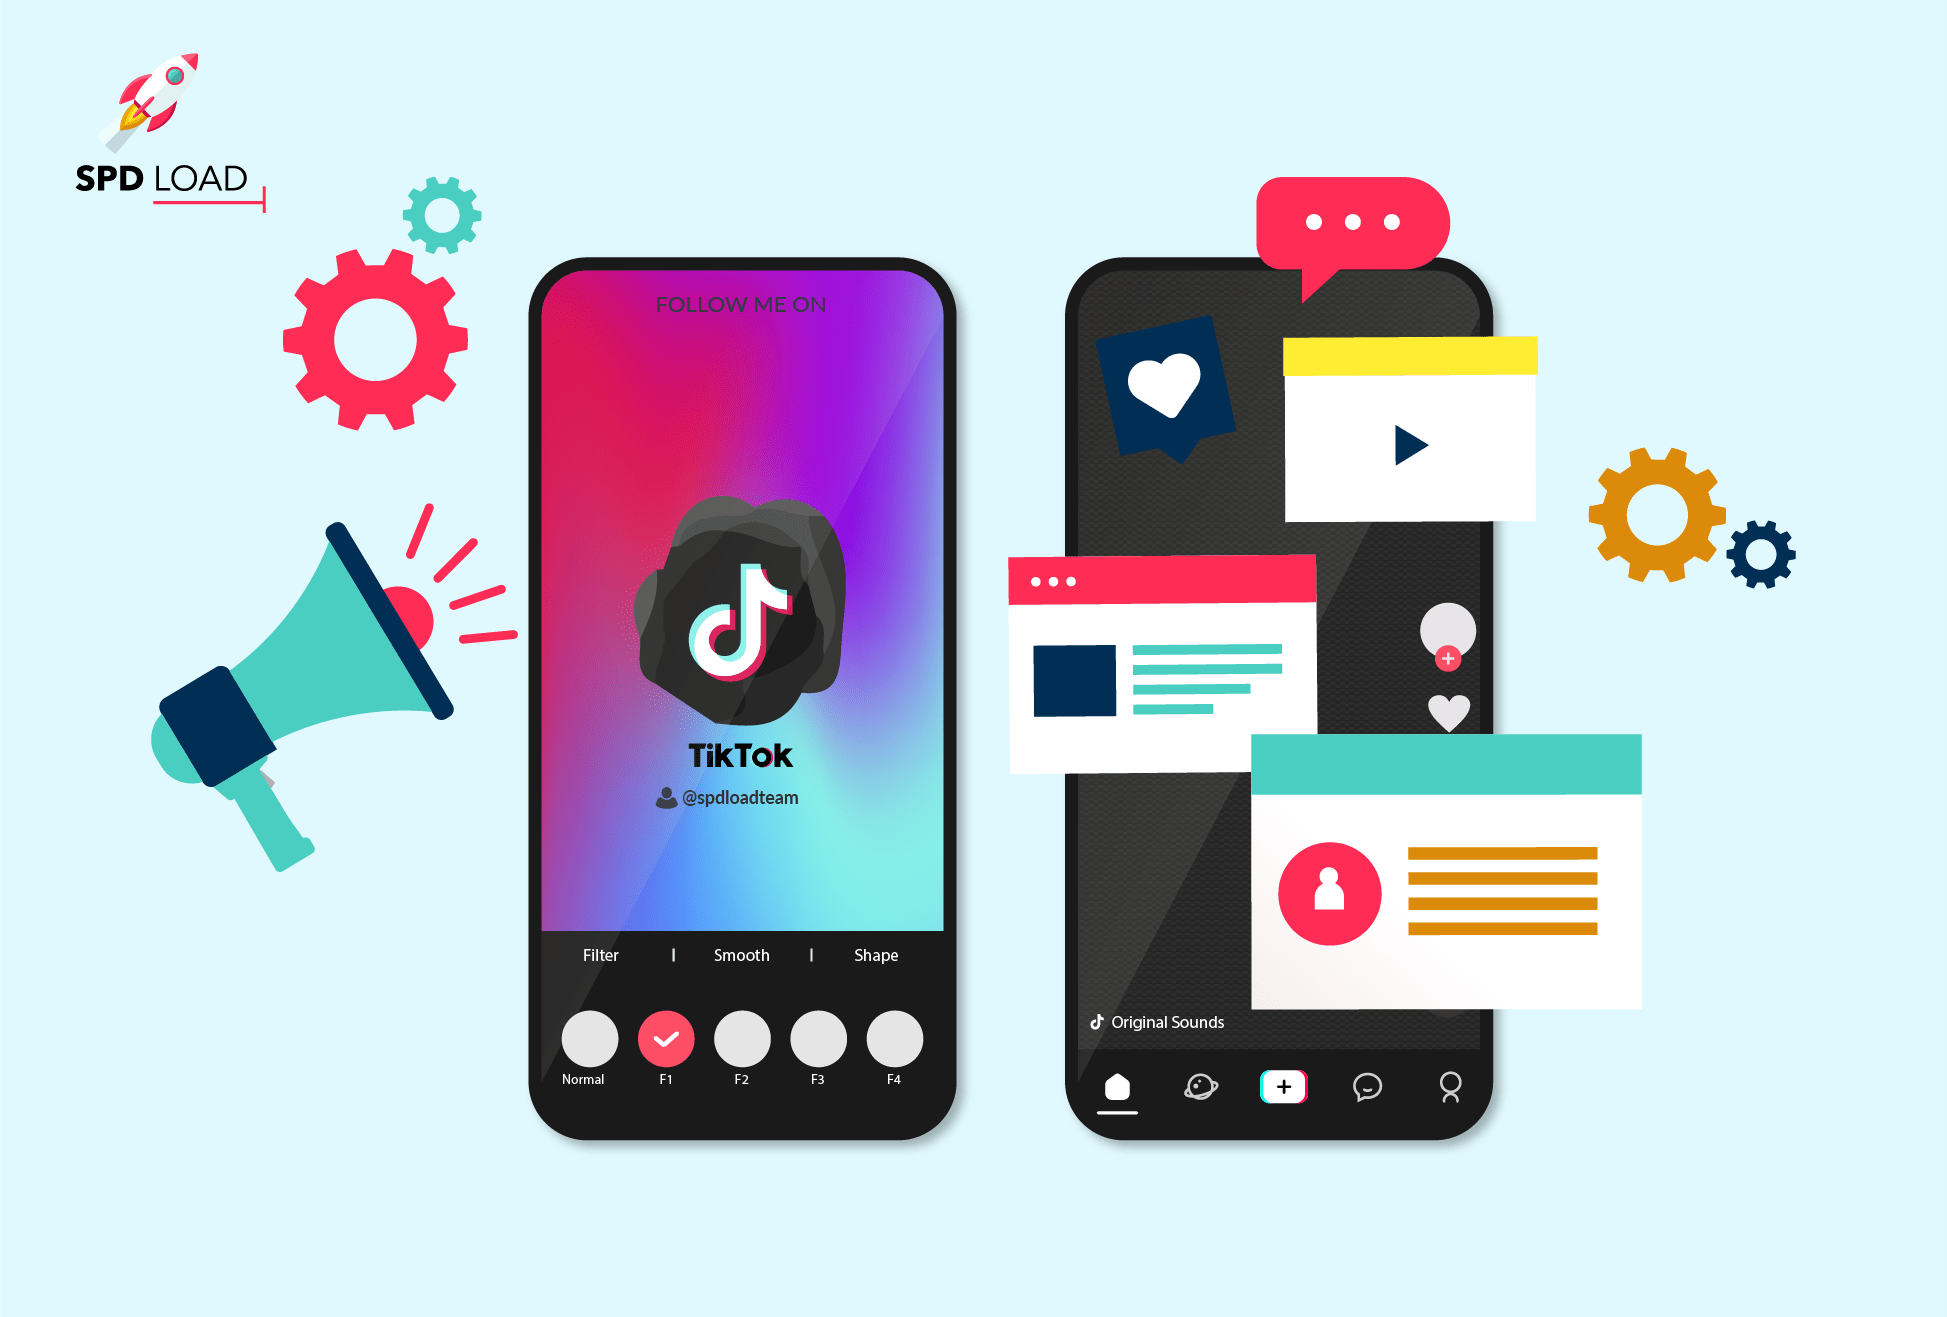 SpdLoad prepared an insightful guide on how to create app like tik tok and consider tiktok app development cost as well